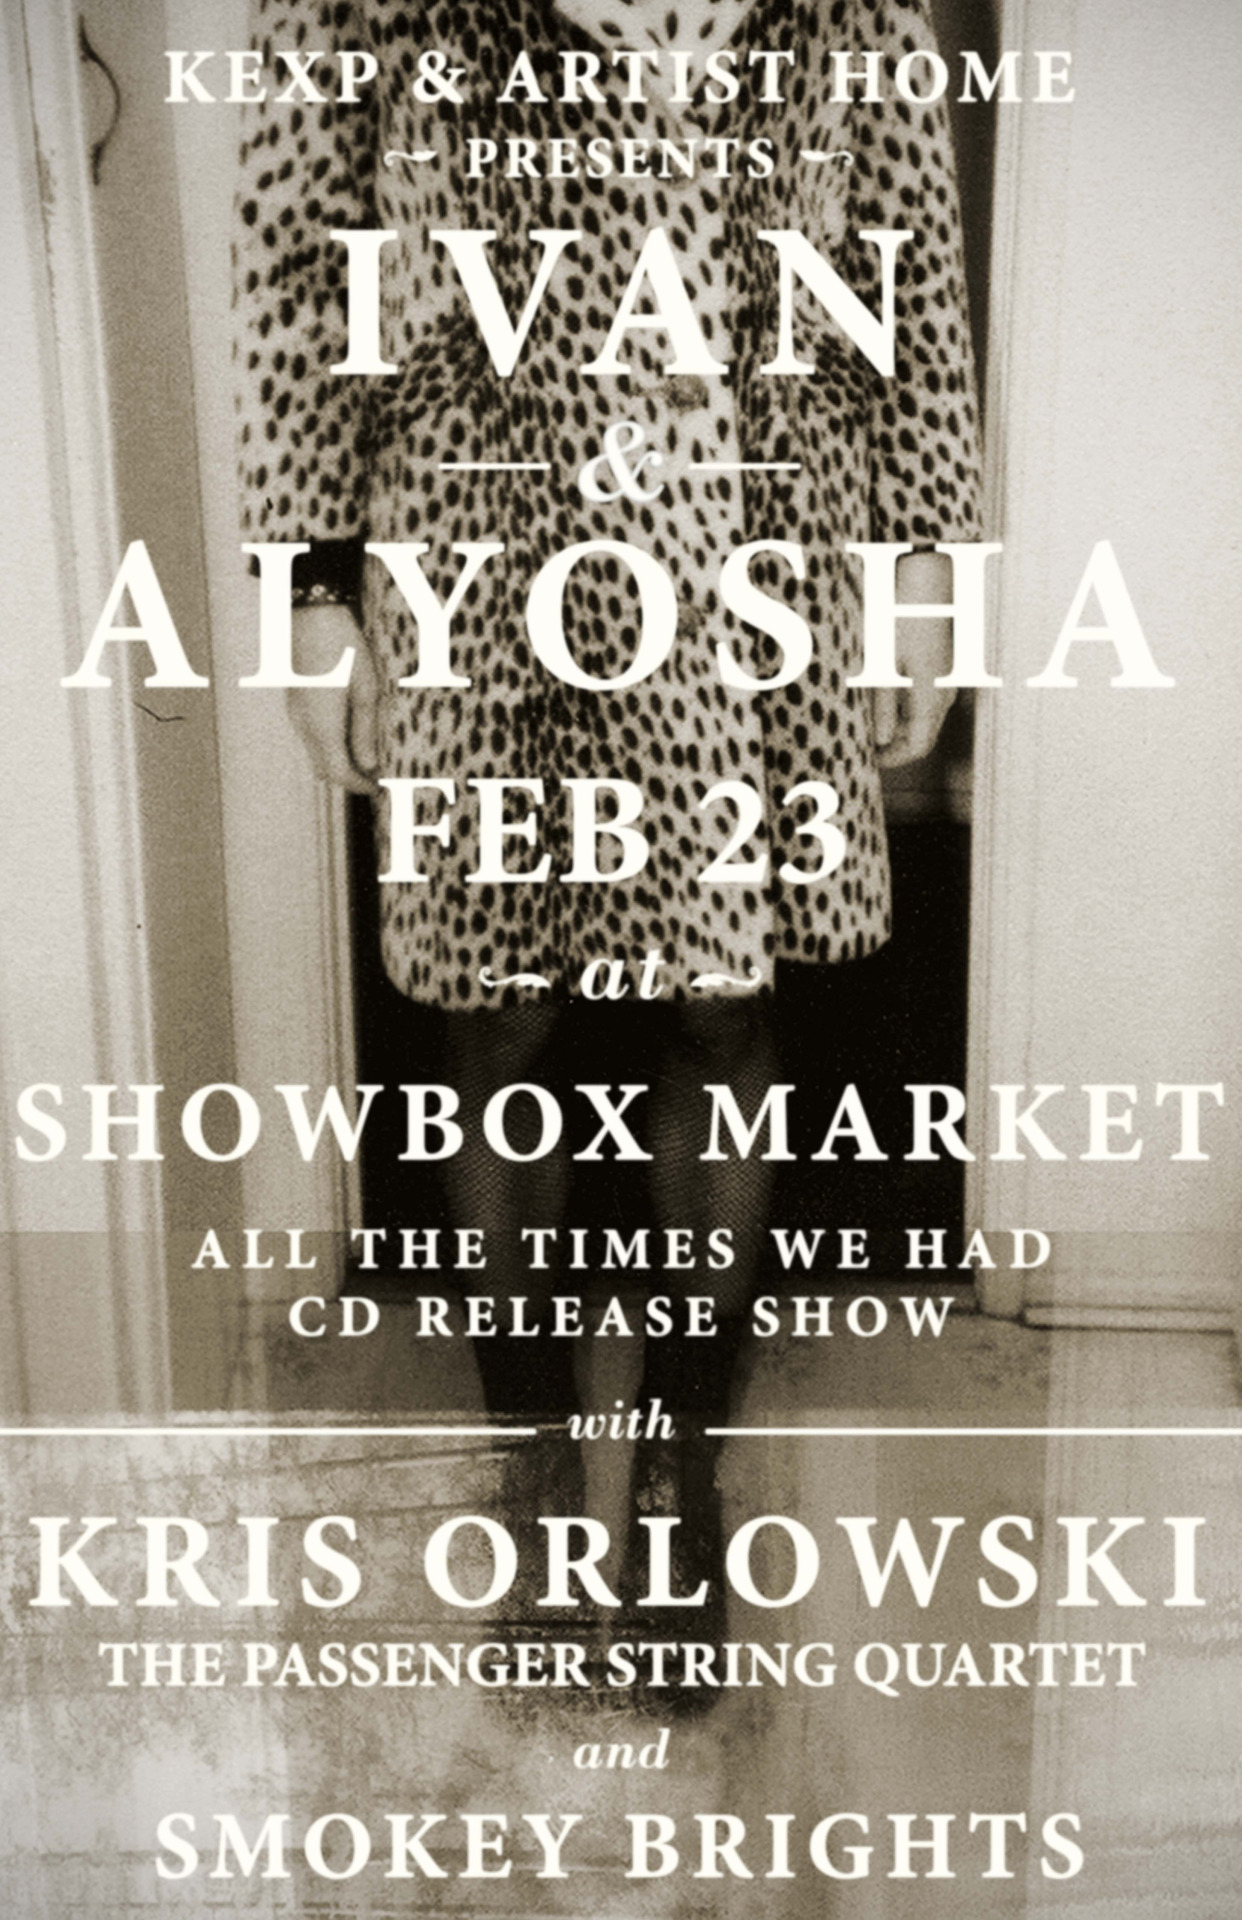 Tickets going fast for our Album Release Show February 23rd at The Showbox w/ Kris Orlowski and Smokey Brights !!!     Would very much appreciate you all getting your tickets early as this show will inevitably sell out, wouldn't want anyone to miss what will be a very big night for us all!    Pre-Sale Link:  http://bit.ly/IvanAlyoshaShowbox     Facebook Event Page:  http://www.facebook.com/events/348750561889892/?fref=ts